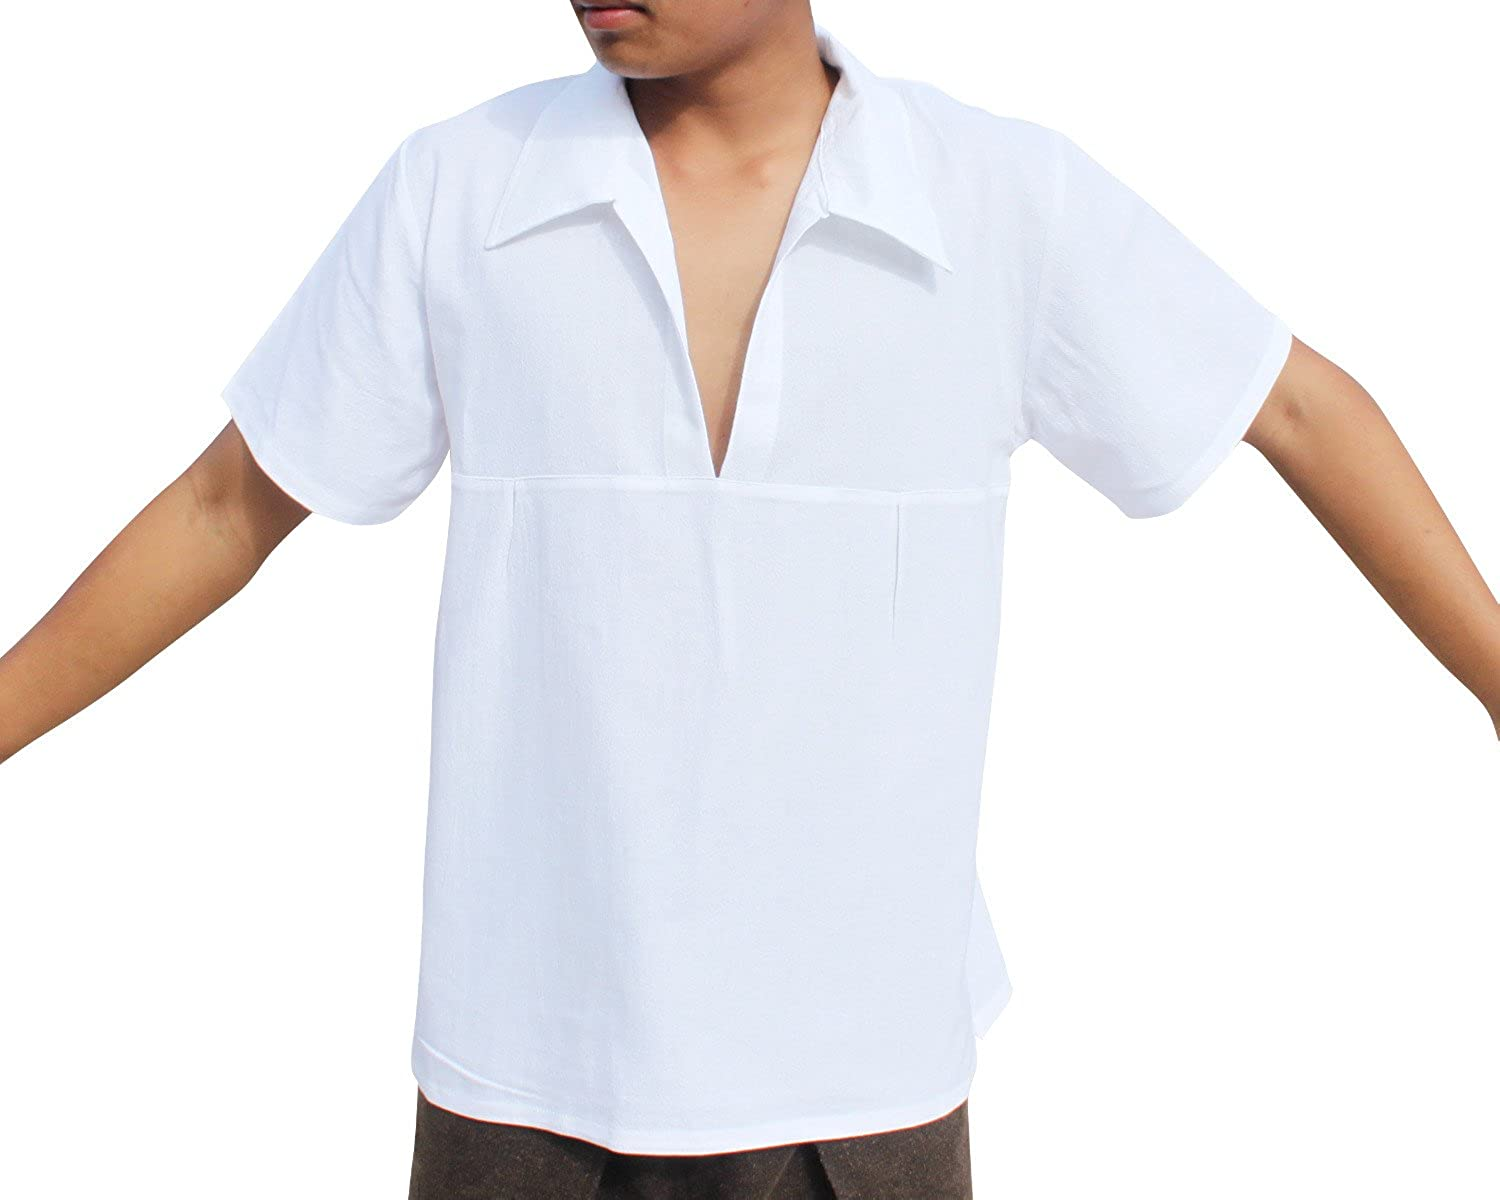 1960s Inspired Fashion: Recreate the Look RaanPahMuang Light Renaissance Cotton Shirt Wide Plunging Poets Collar Plus Size $18.78 AT vintagedancer.com